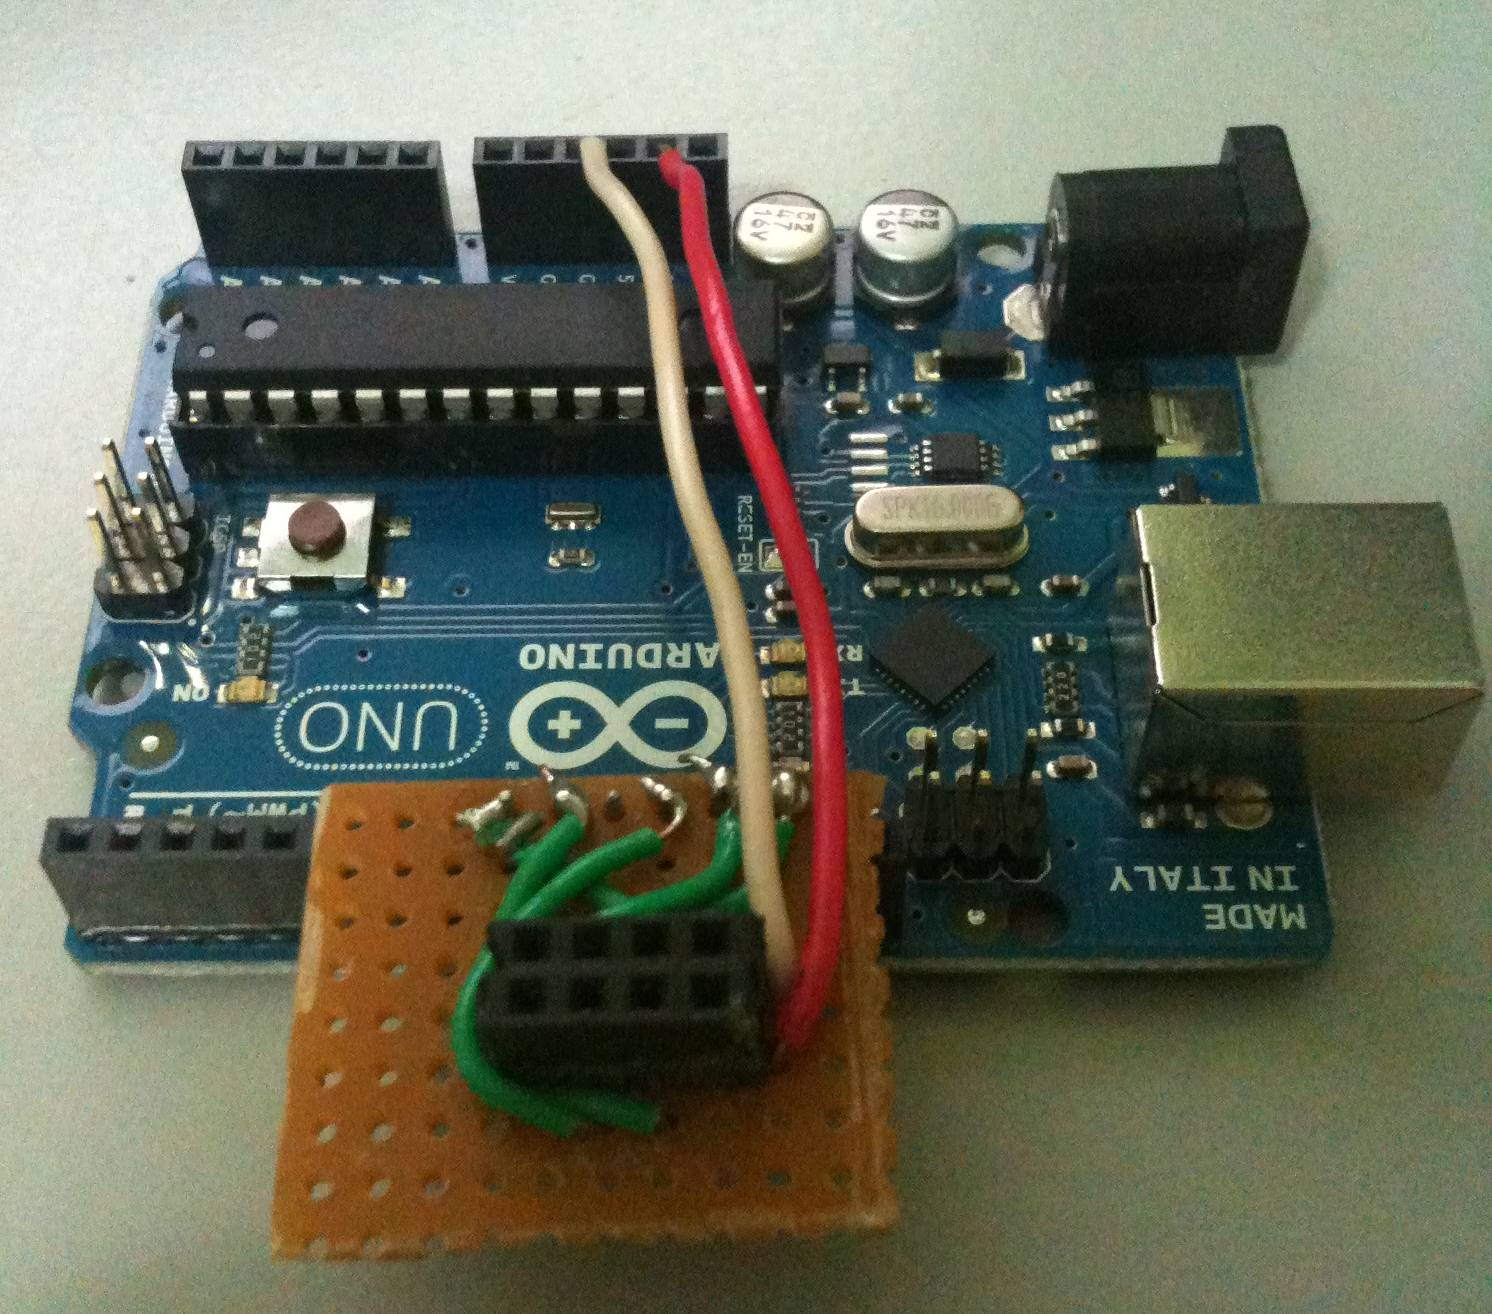 pin 7 arduino great white shark life cycle diagram for beginners february 2013